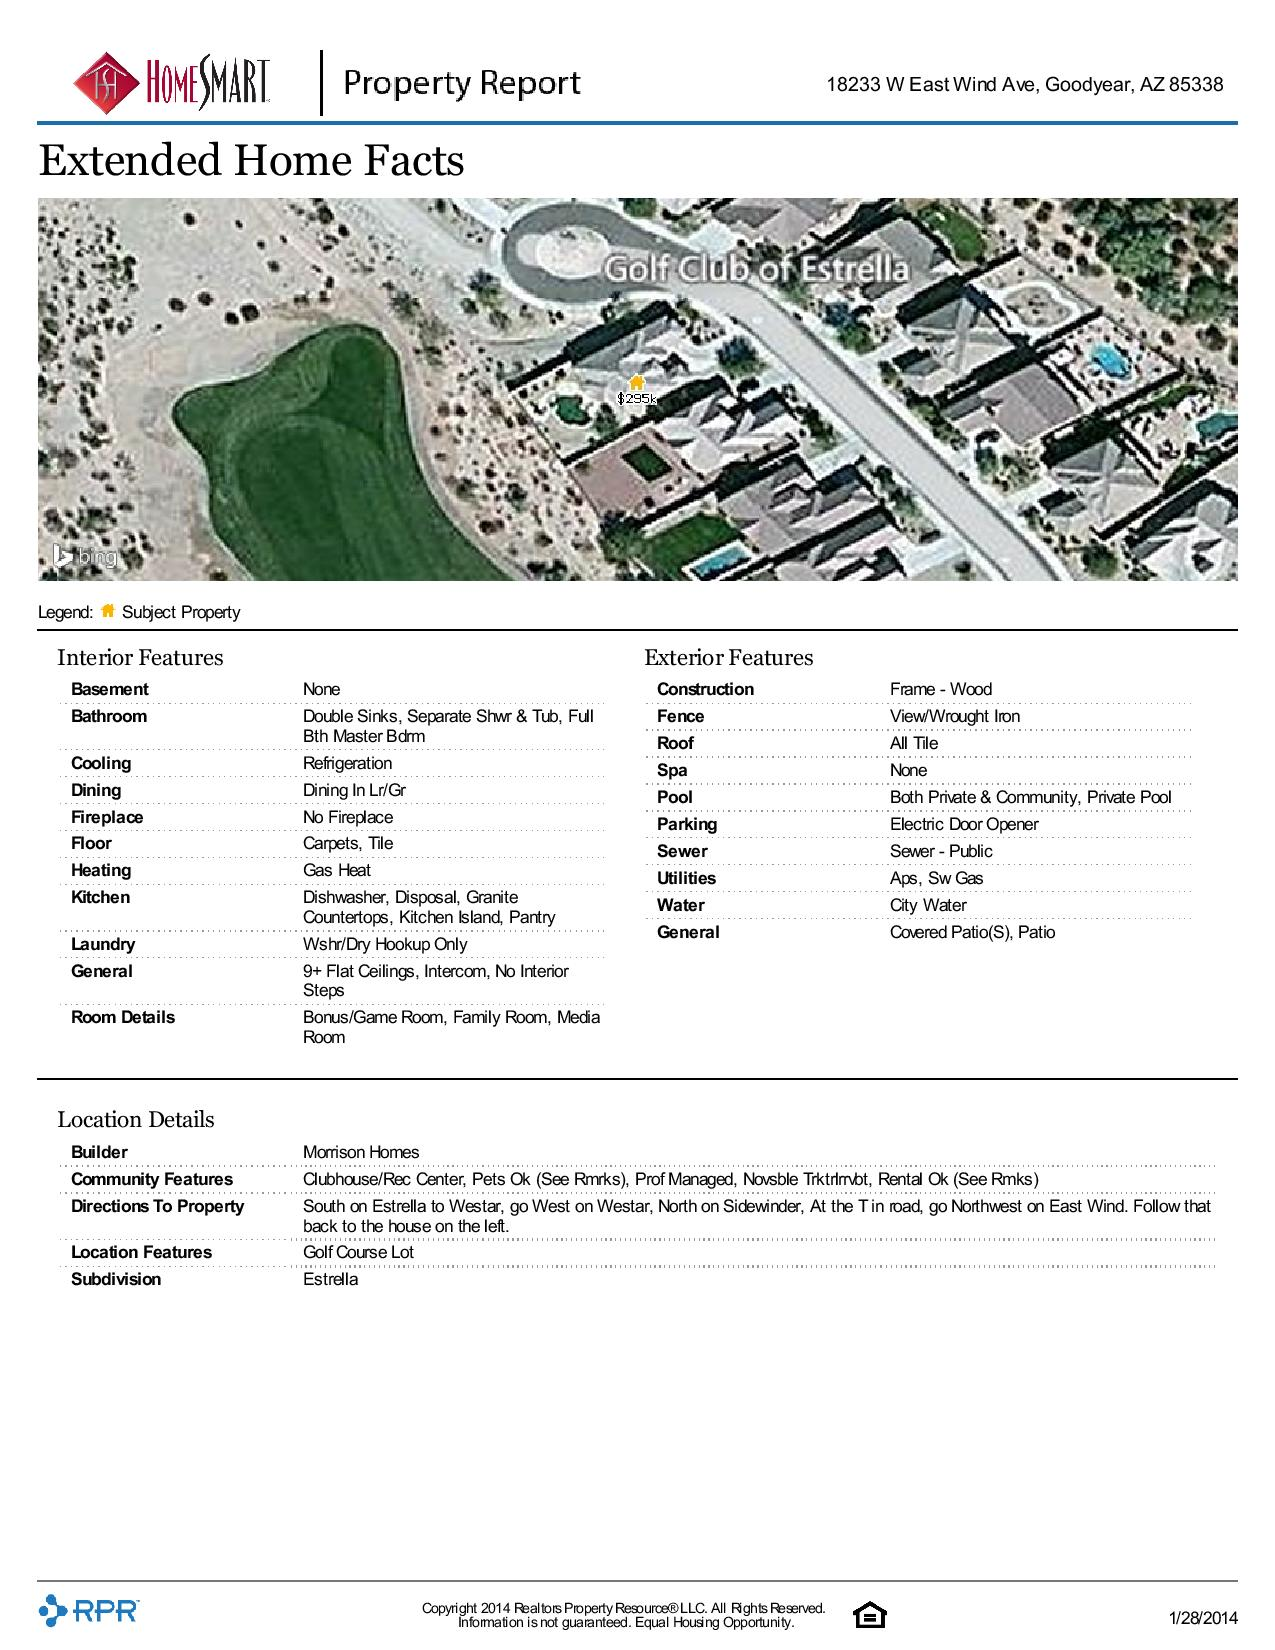 18233-W-East-Wind-Ave-Goodyear-AZ-85338.pdf-page-004